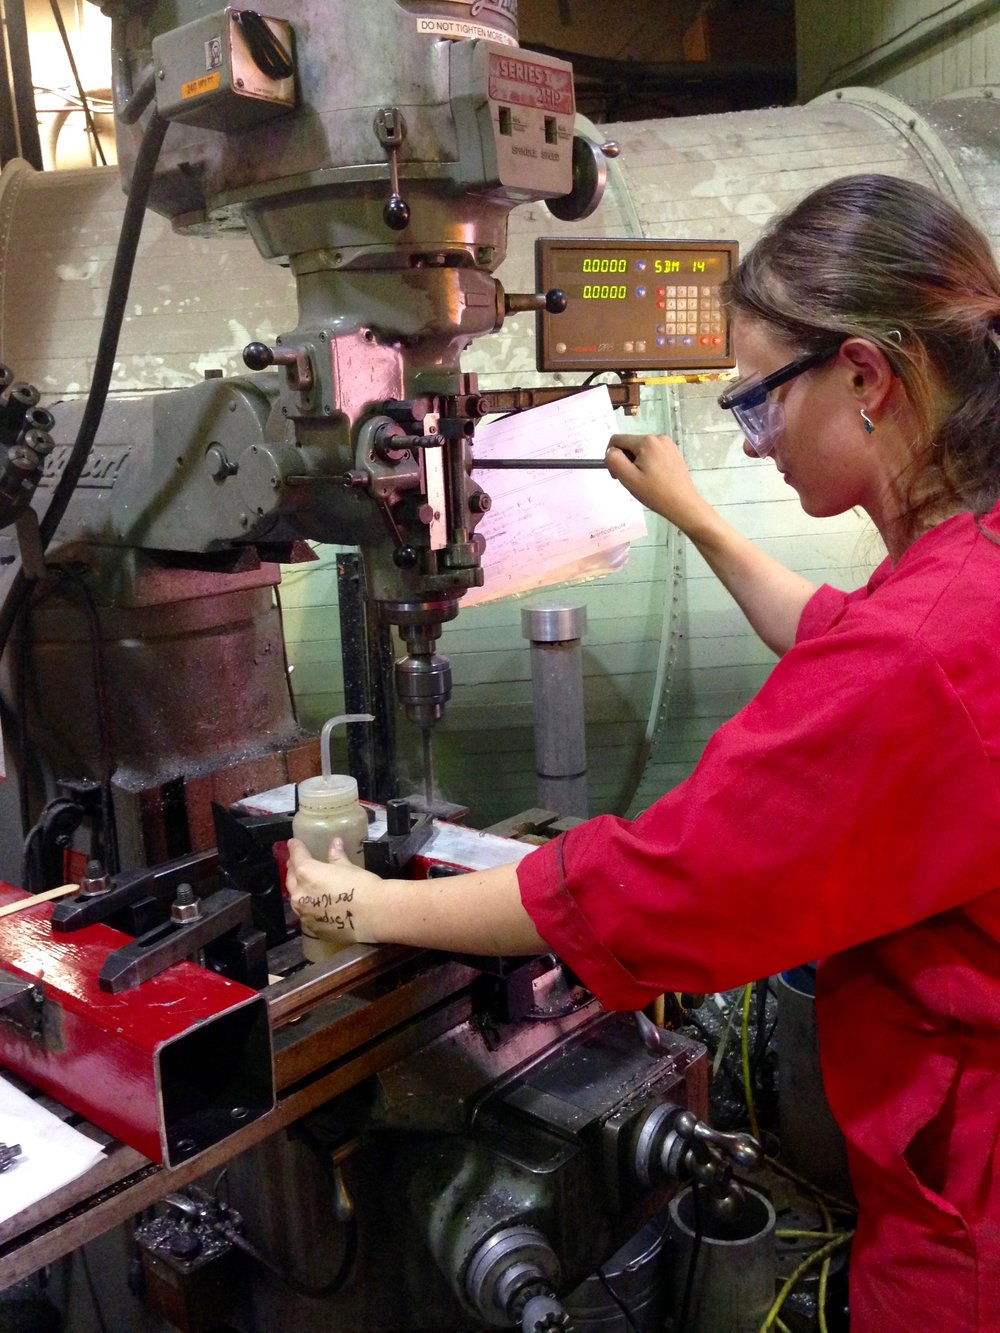 Skye Mceowen machining the avionics unit structure on the mill